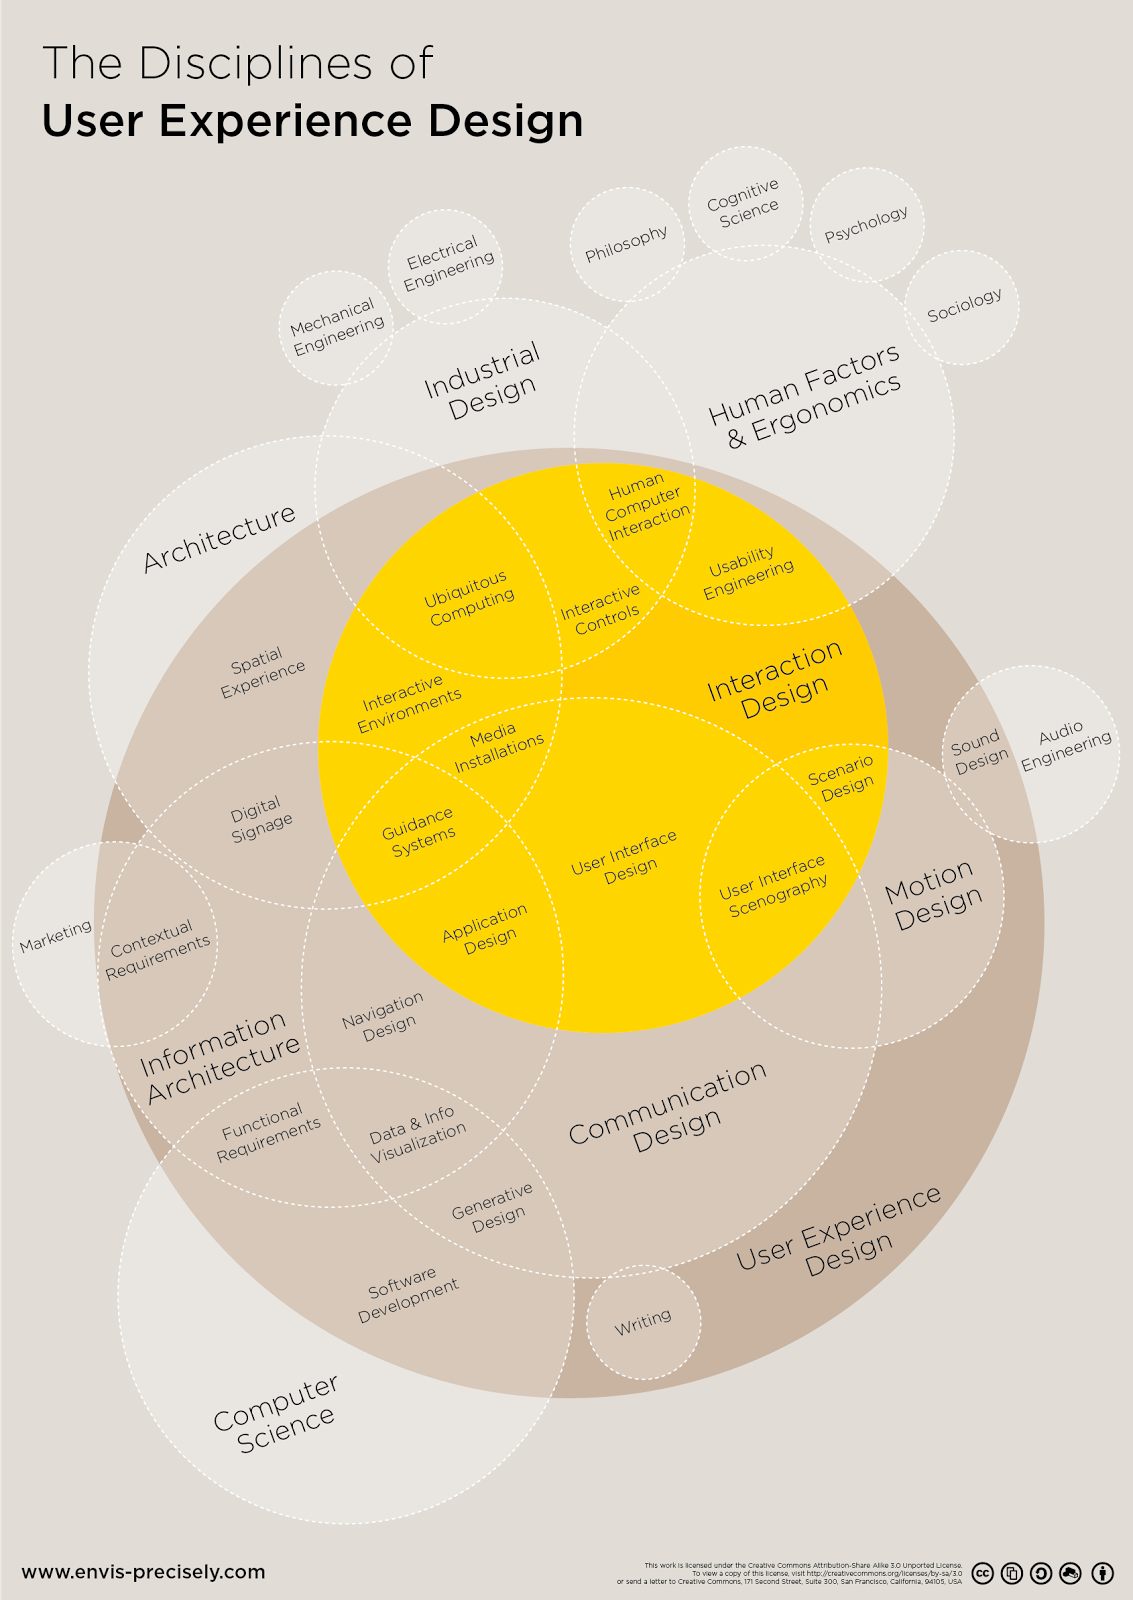 A diagram depicting the different disciplines of UX design